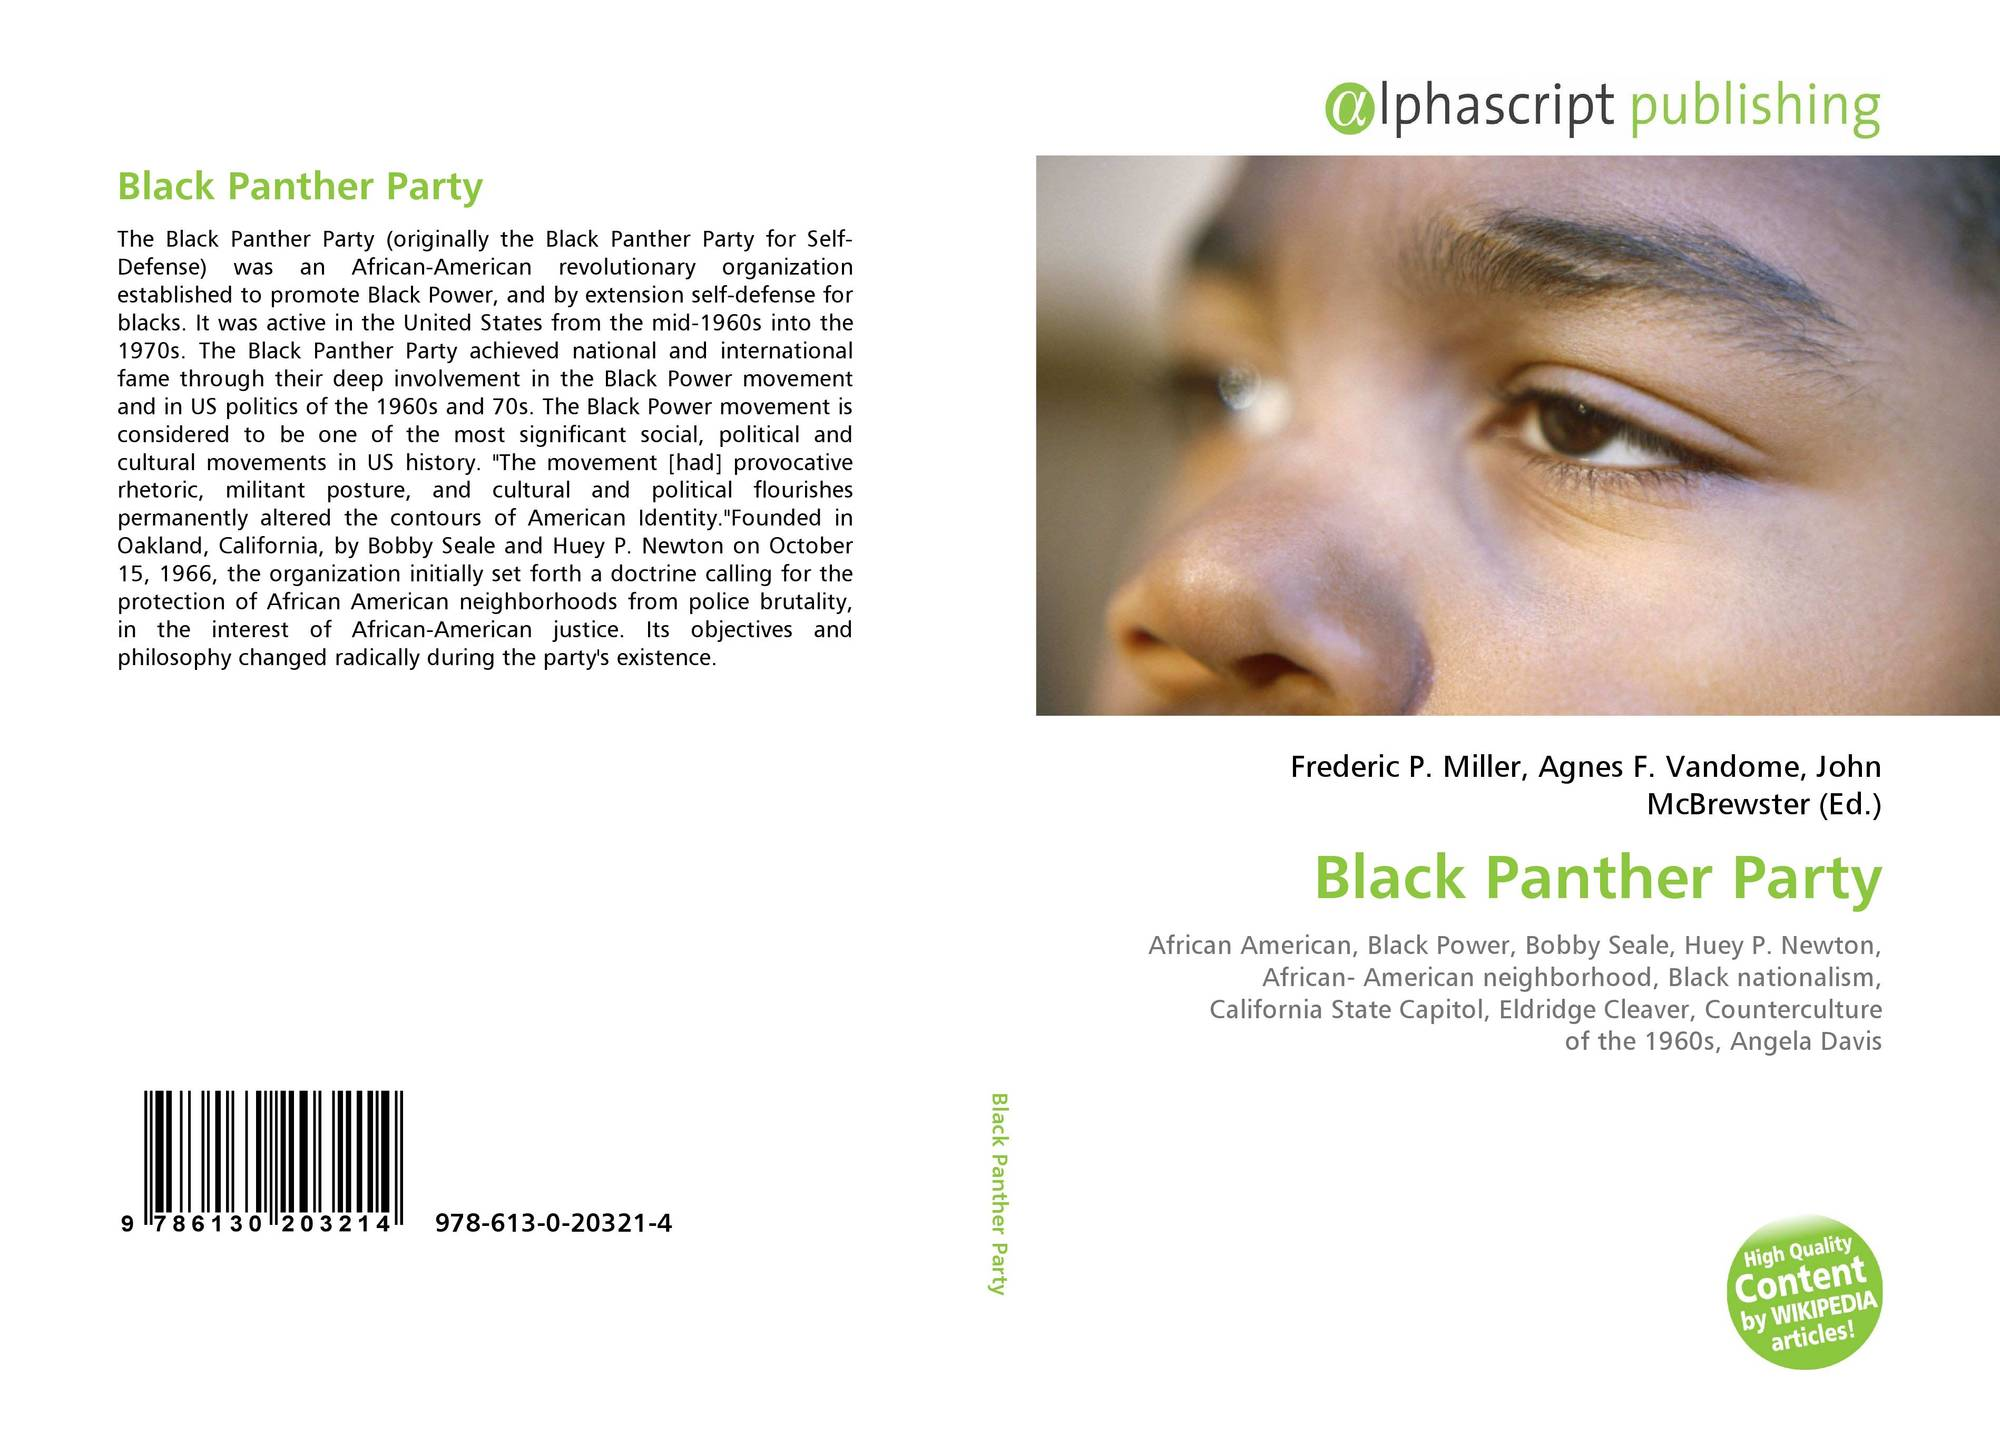 Black Panther Party, 978-613-0-20321-4, 6130203217